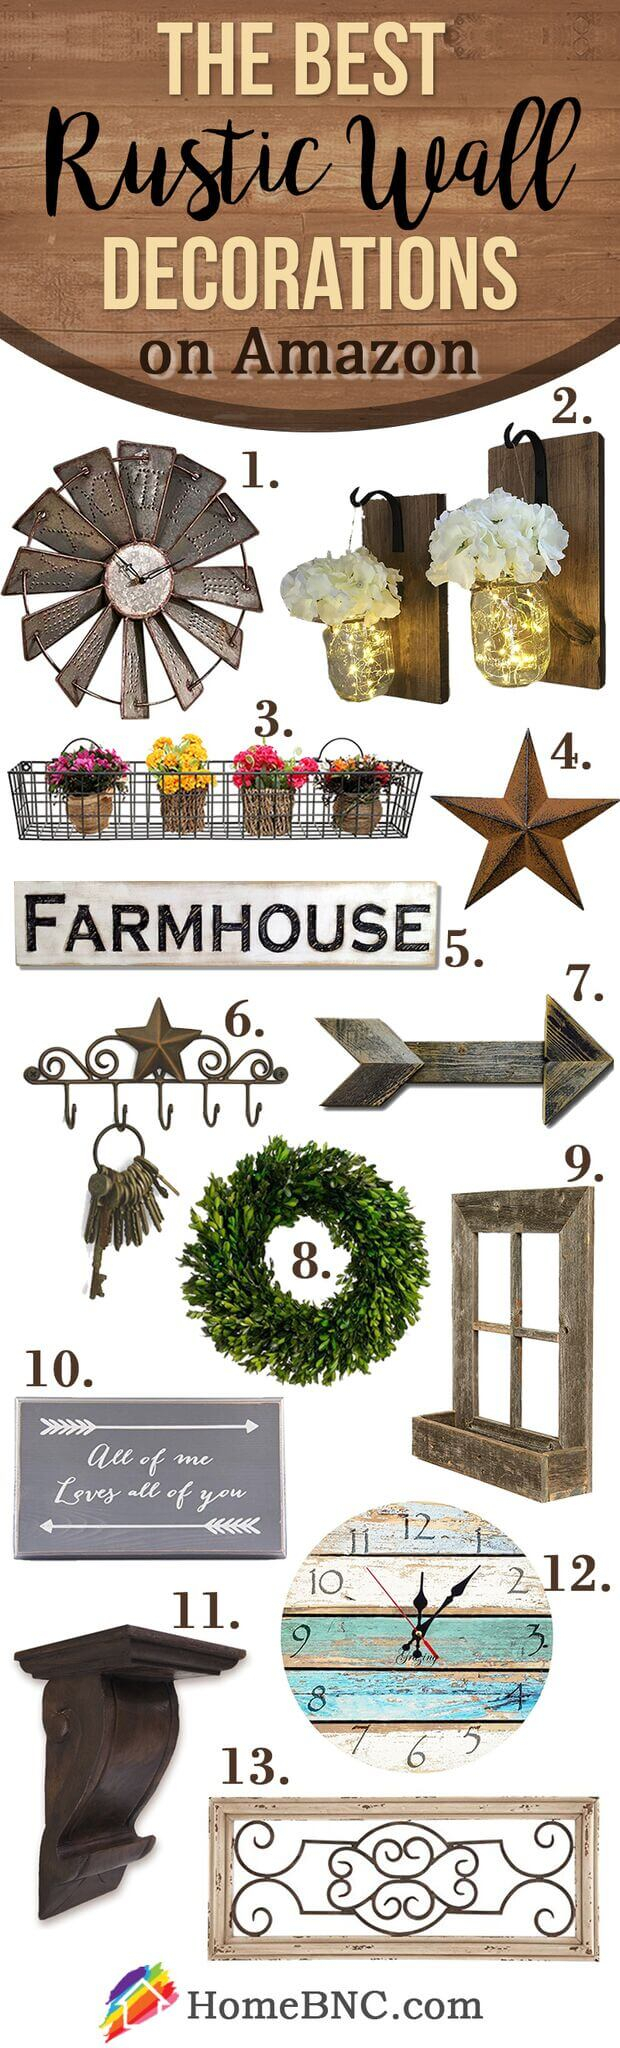 36 Best Diy Wall Art Ideas (Designs And Decorations) For 2019 with Floral Wreath Wood Framed Wall Decor (Image 6 of 30)